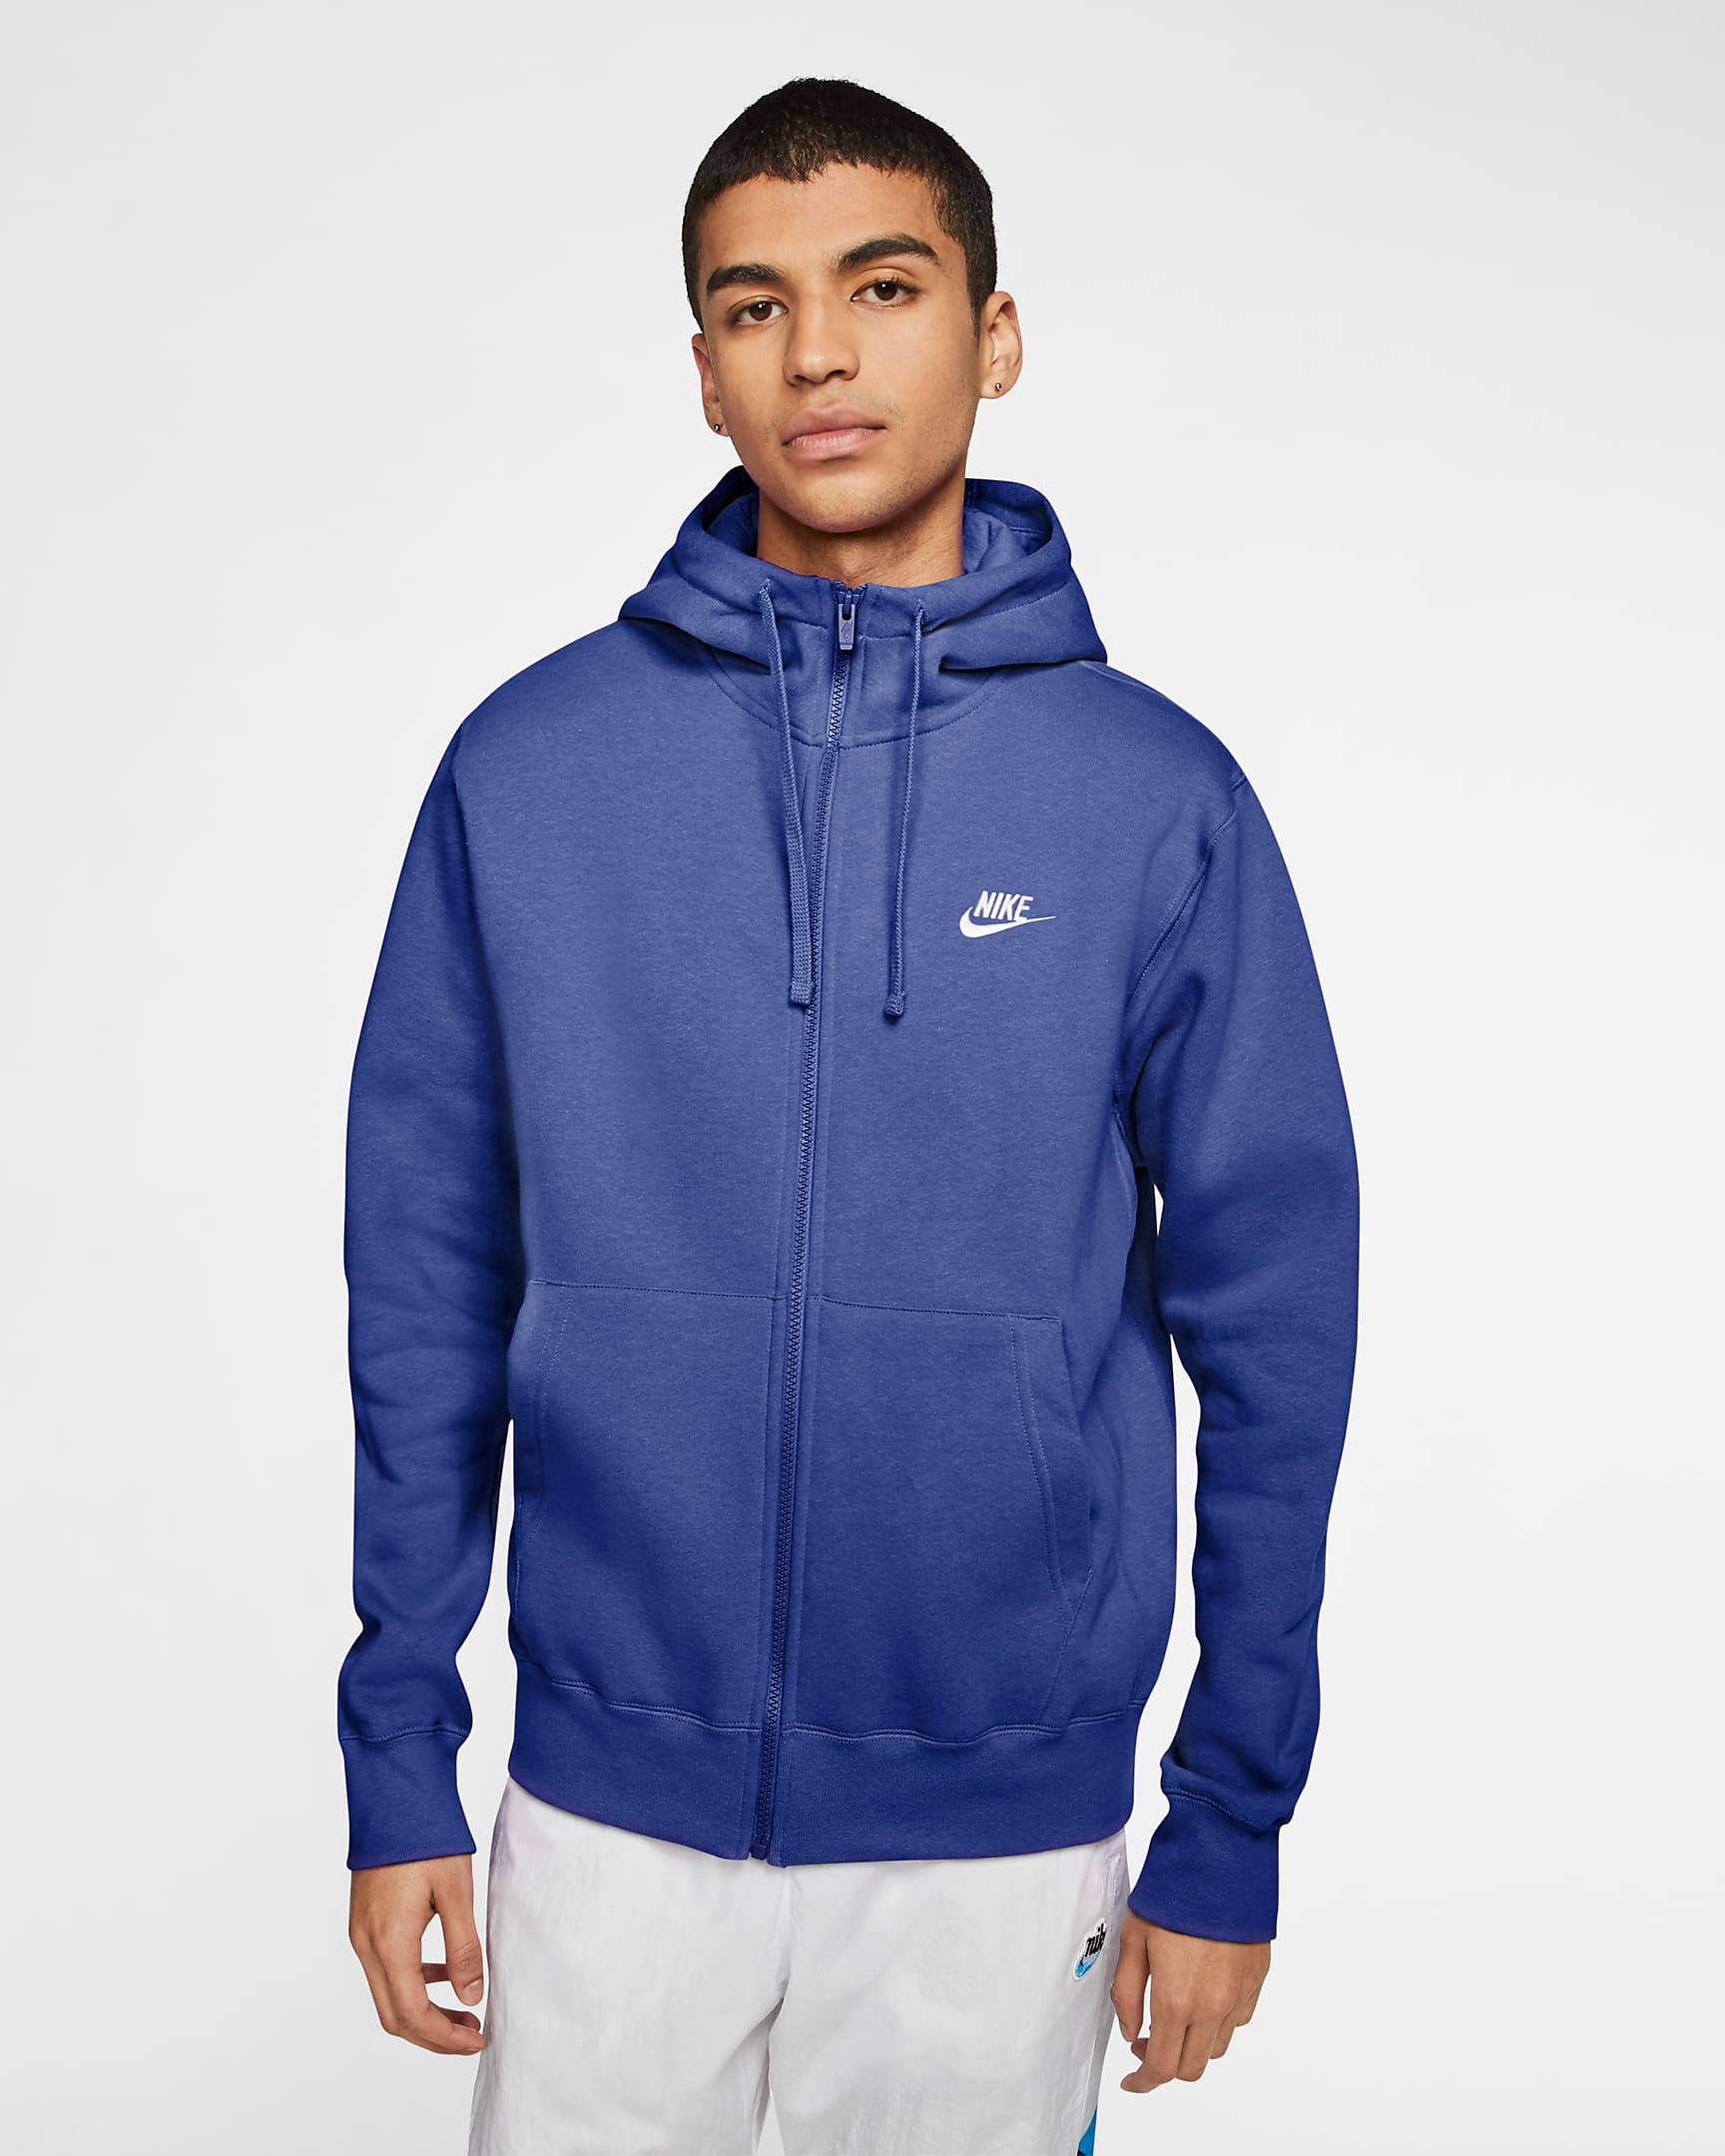 jordan-14-hyper-royal-blue-nike-zip-hoodie-match